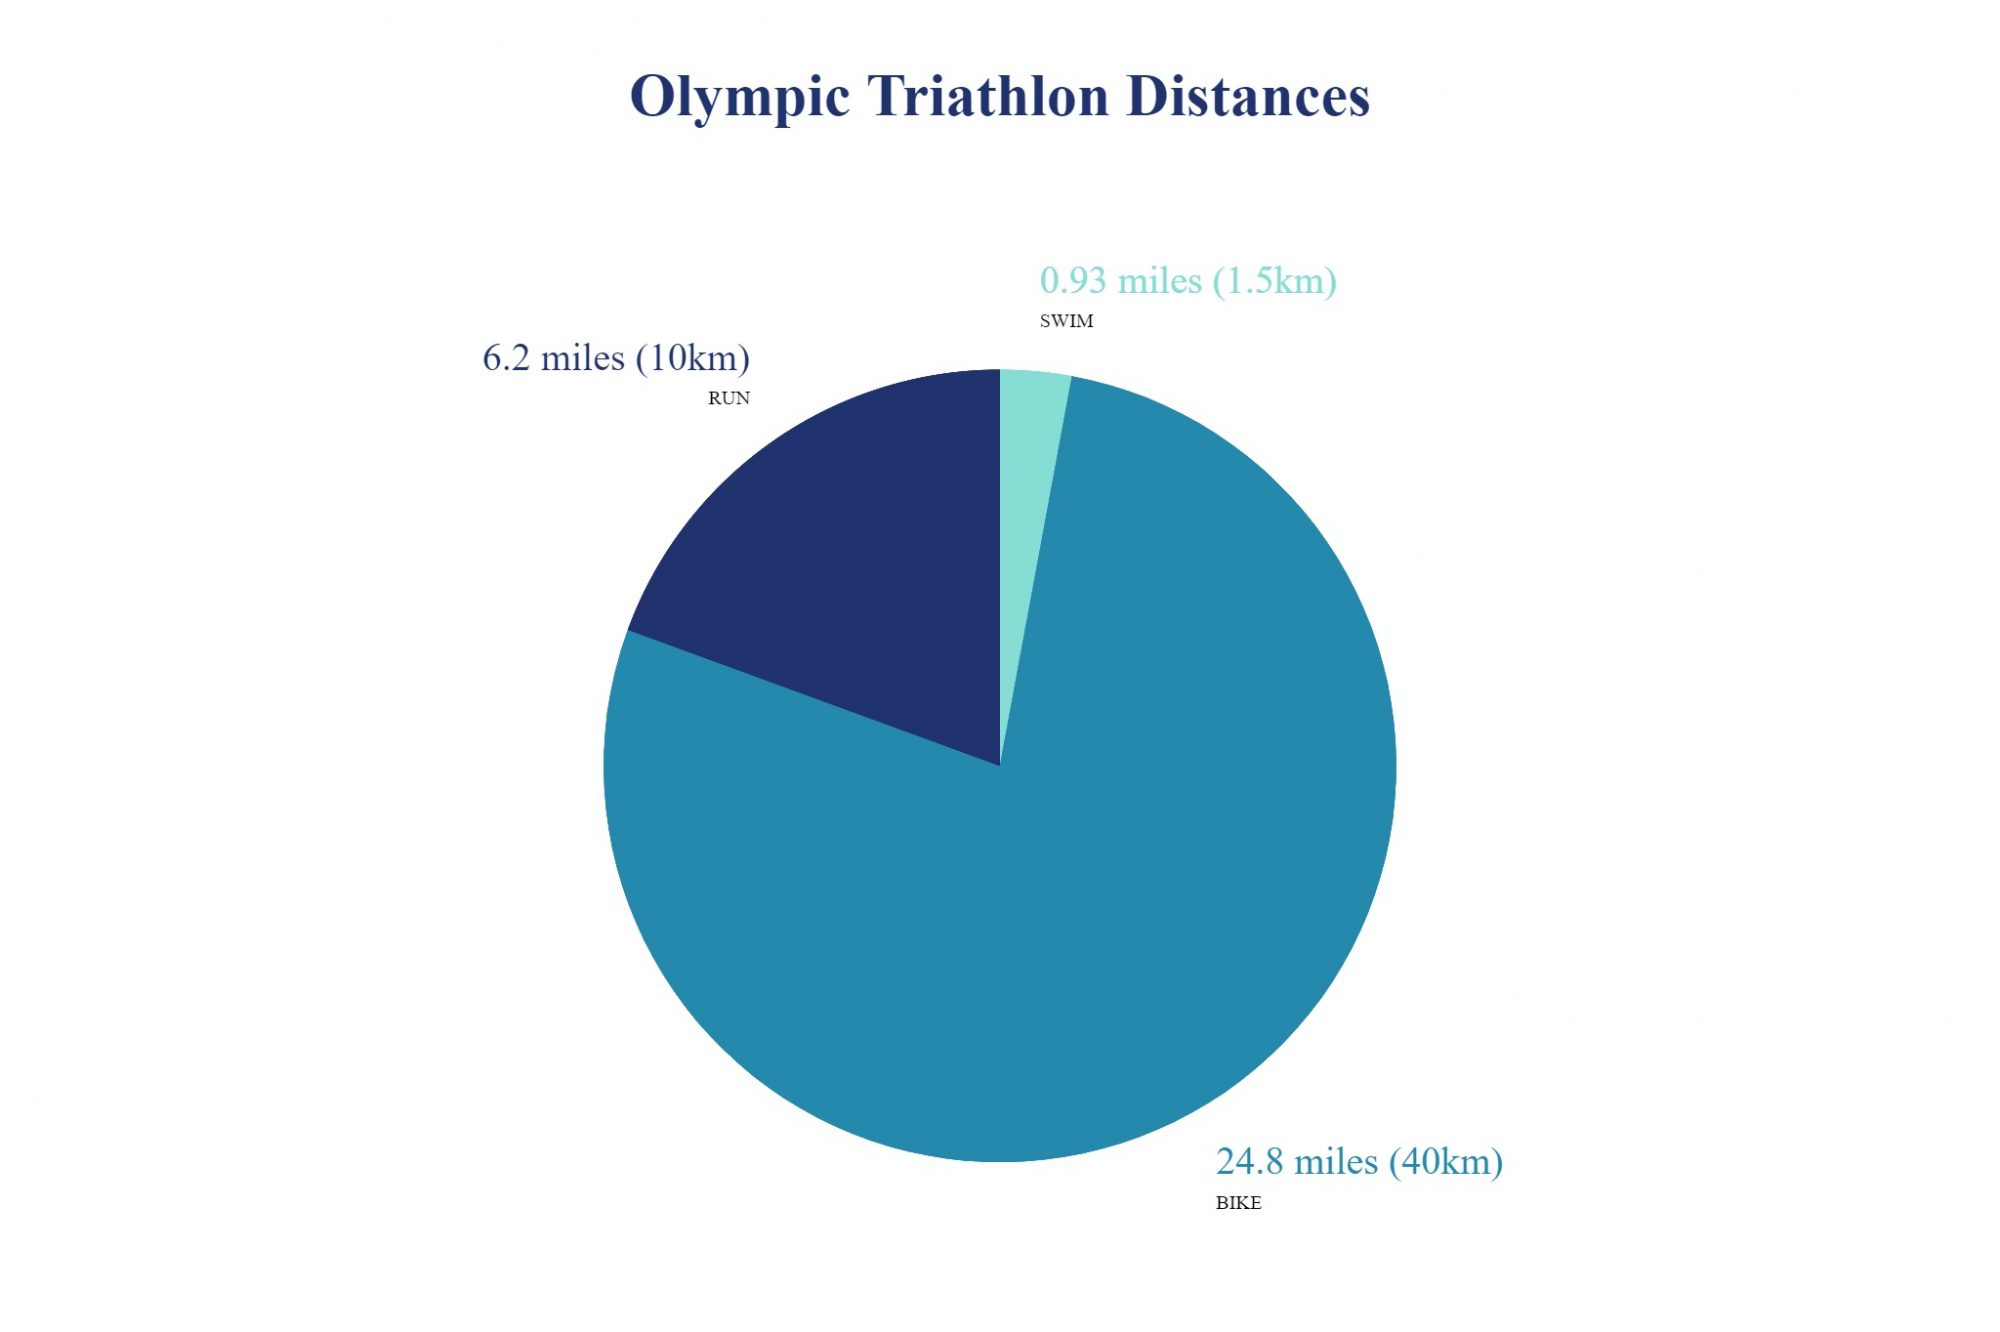 olympic distance triathlon in miles kilometers